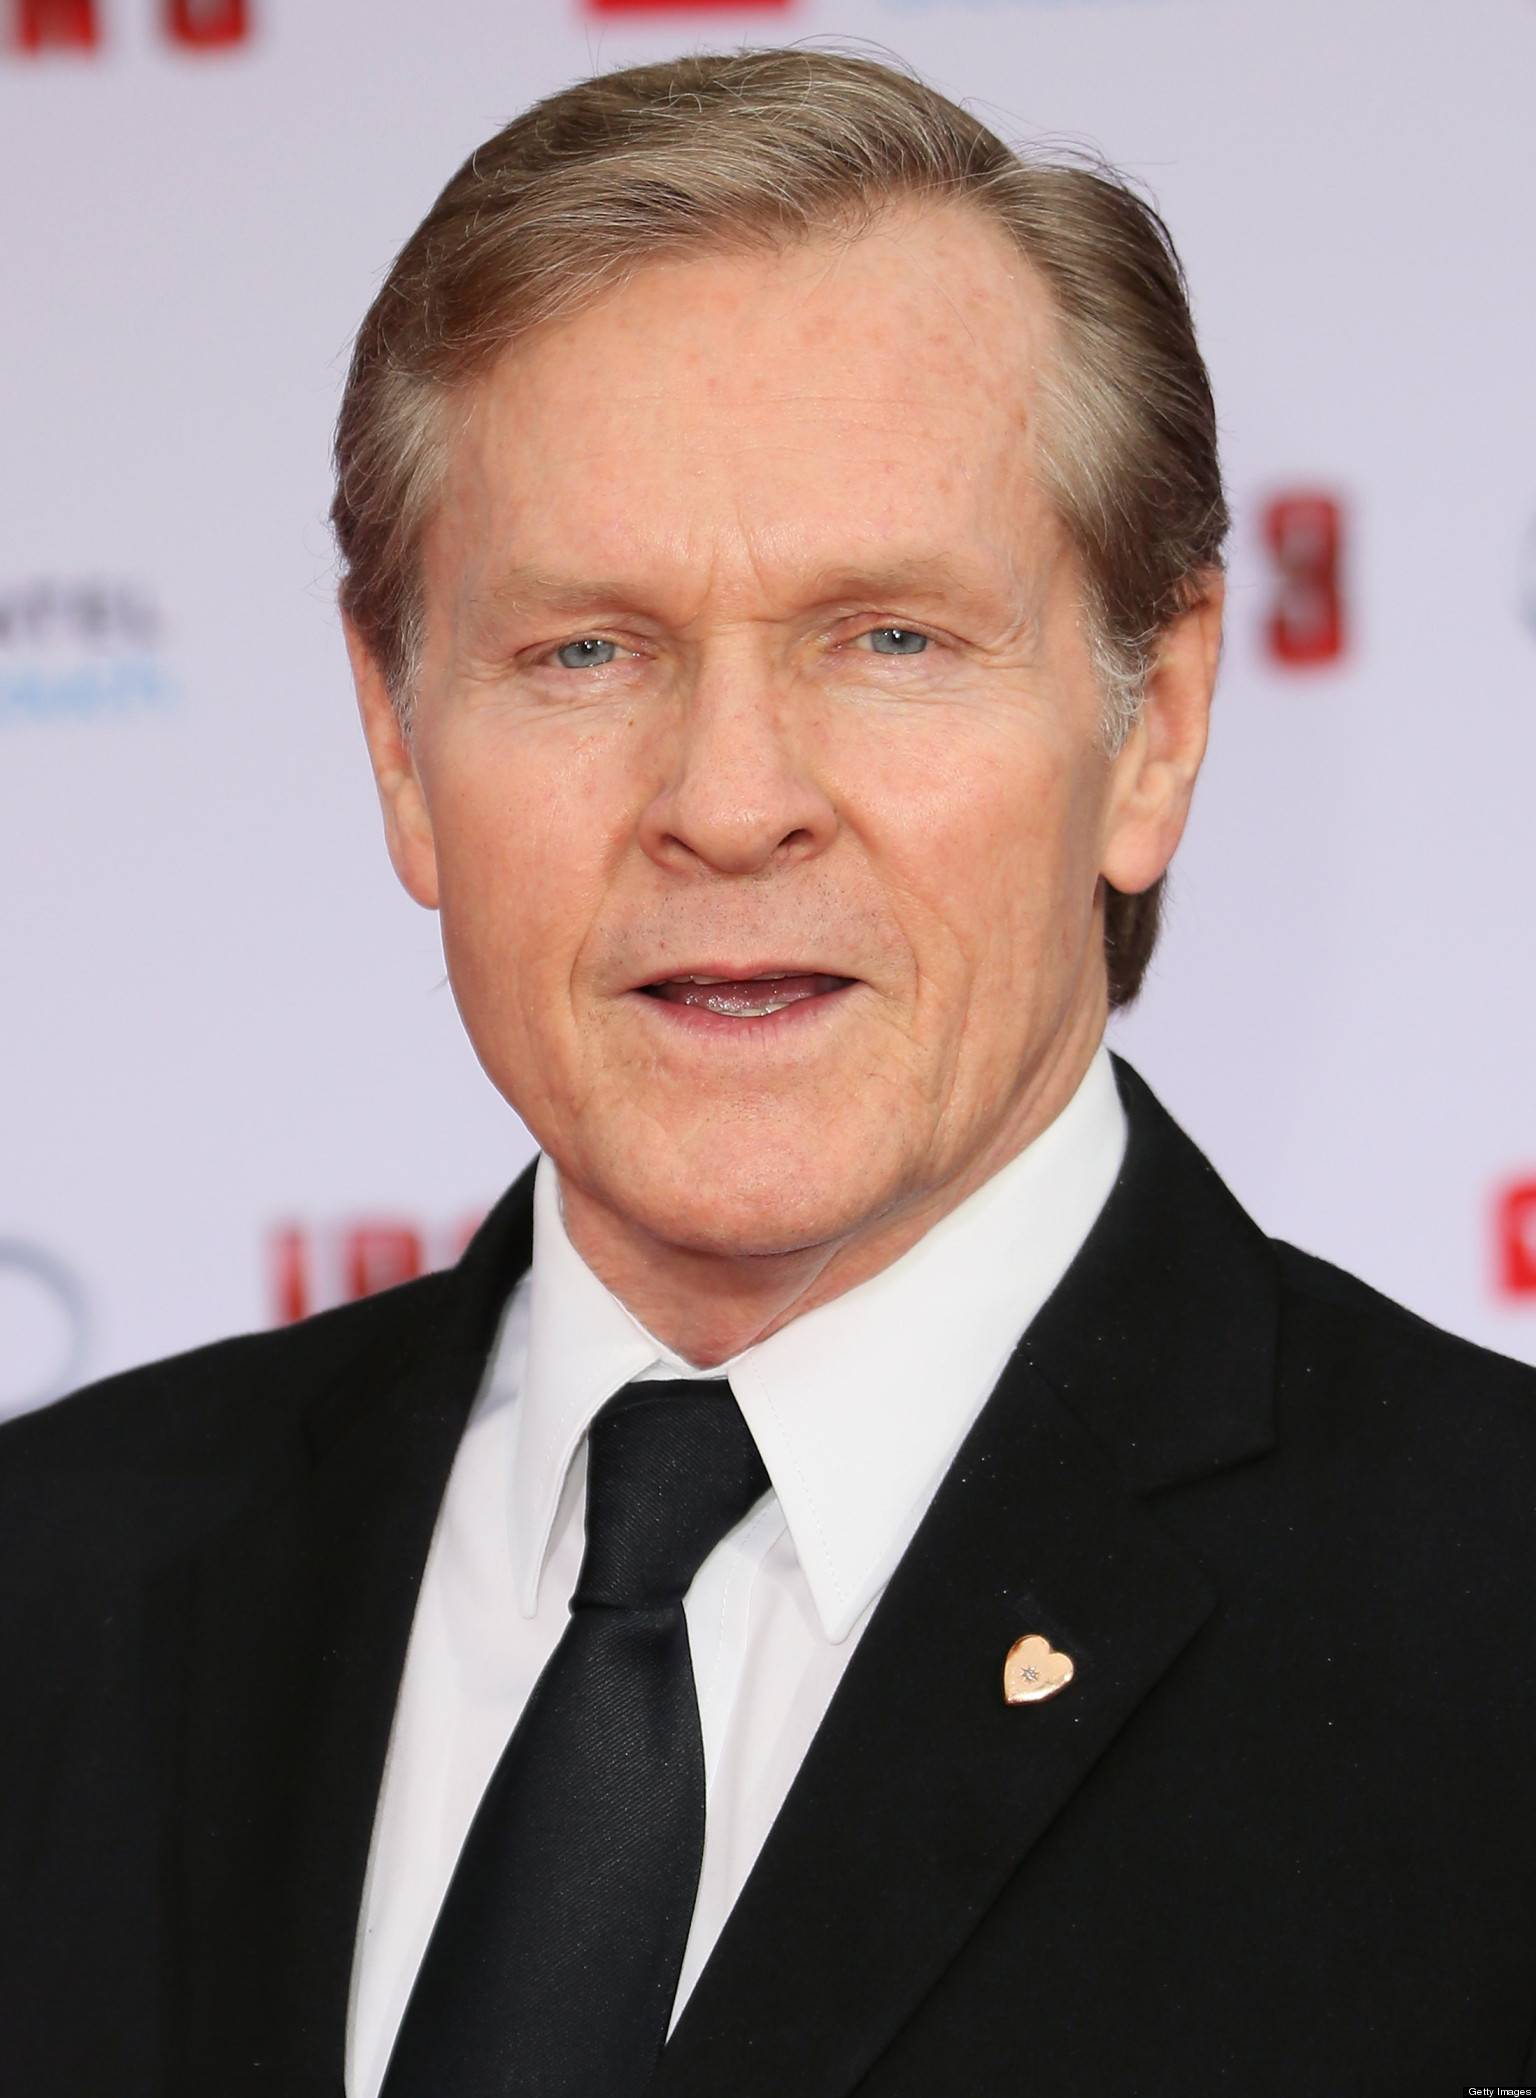 William Sadler earned a  million dollar salary - leaving the net worth at 1 million in 2018